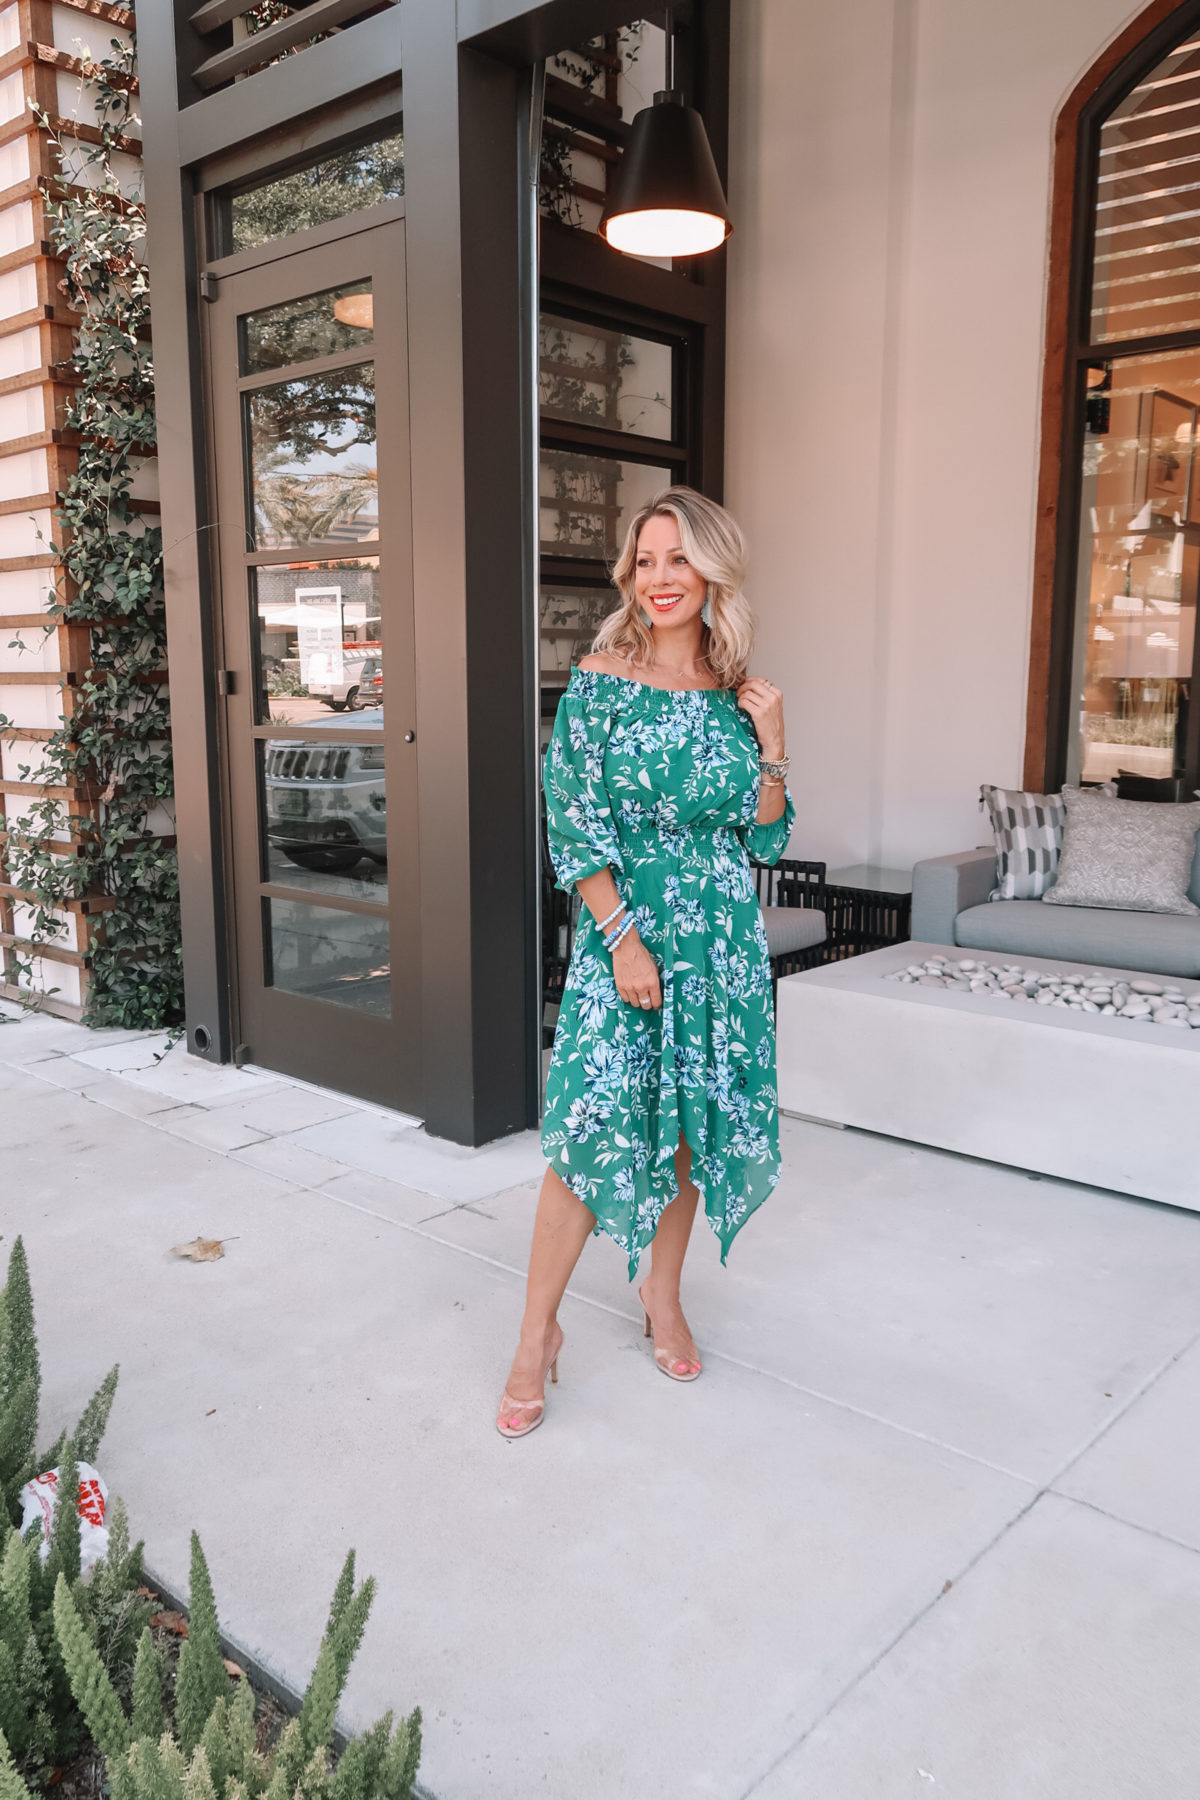 Green Floral Off the Shoulder Midi Dress, Clear Heels